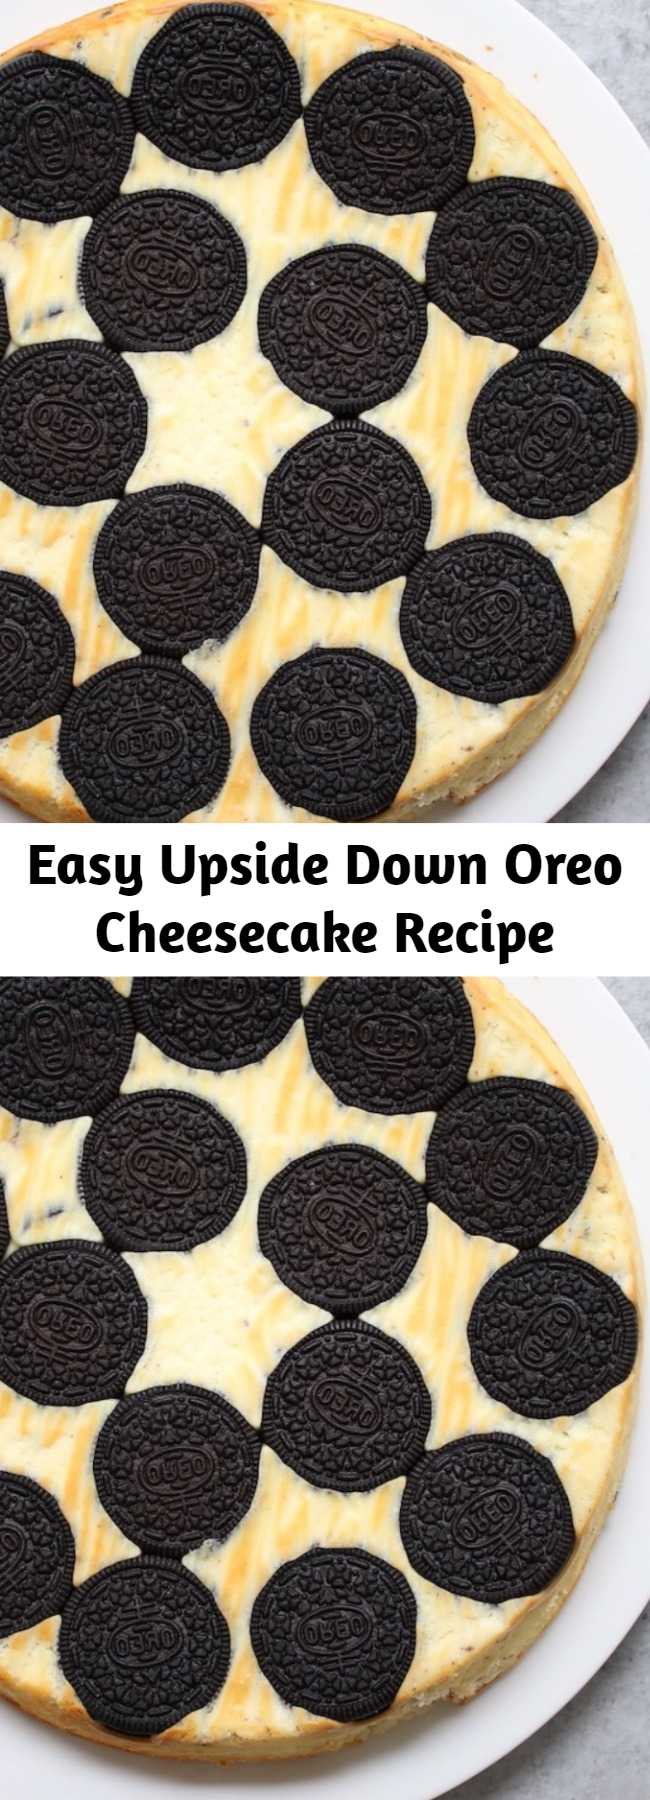 Easy Upside Down Oreo Cheesecake Recipe - Upside Down Oreo Cheesecake is a scrumptious dessert with an elegant presentation that never fails to impress! The cheesecake is easy to make with just 5 simple ingredients - cream cheese, eggs, sugar, yogurt and vanilla - and the bottom of the pan is lined with whole oreo cookies that moisten during baking for a melt-in-your-mouth sensation!